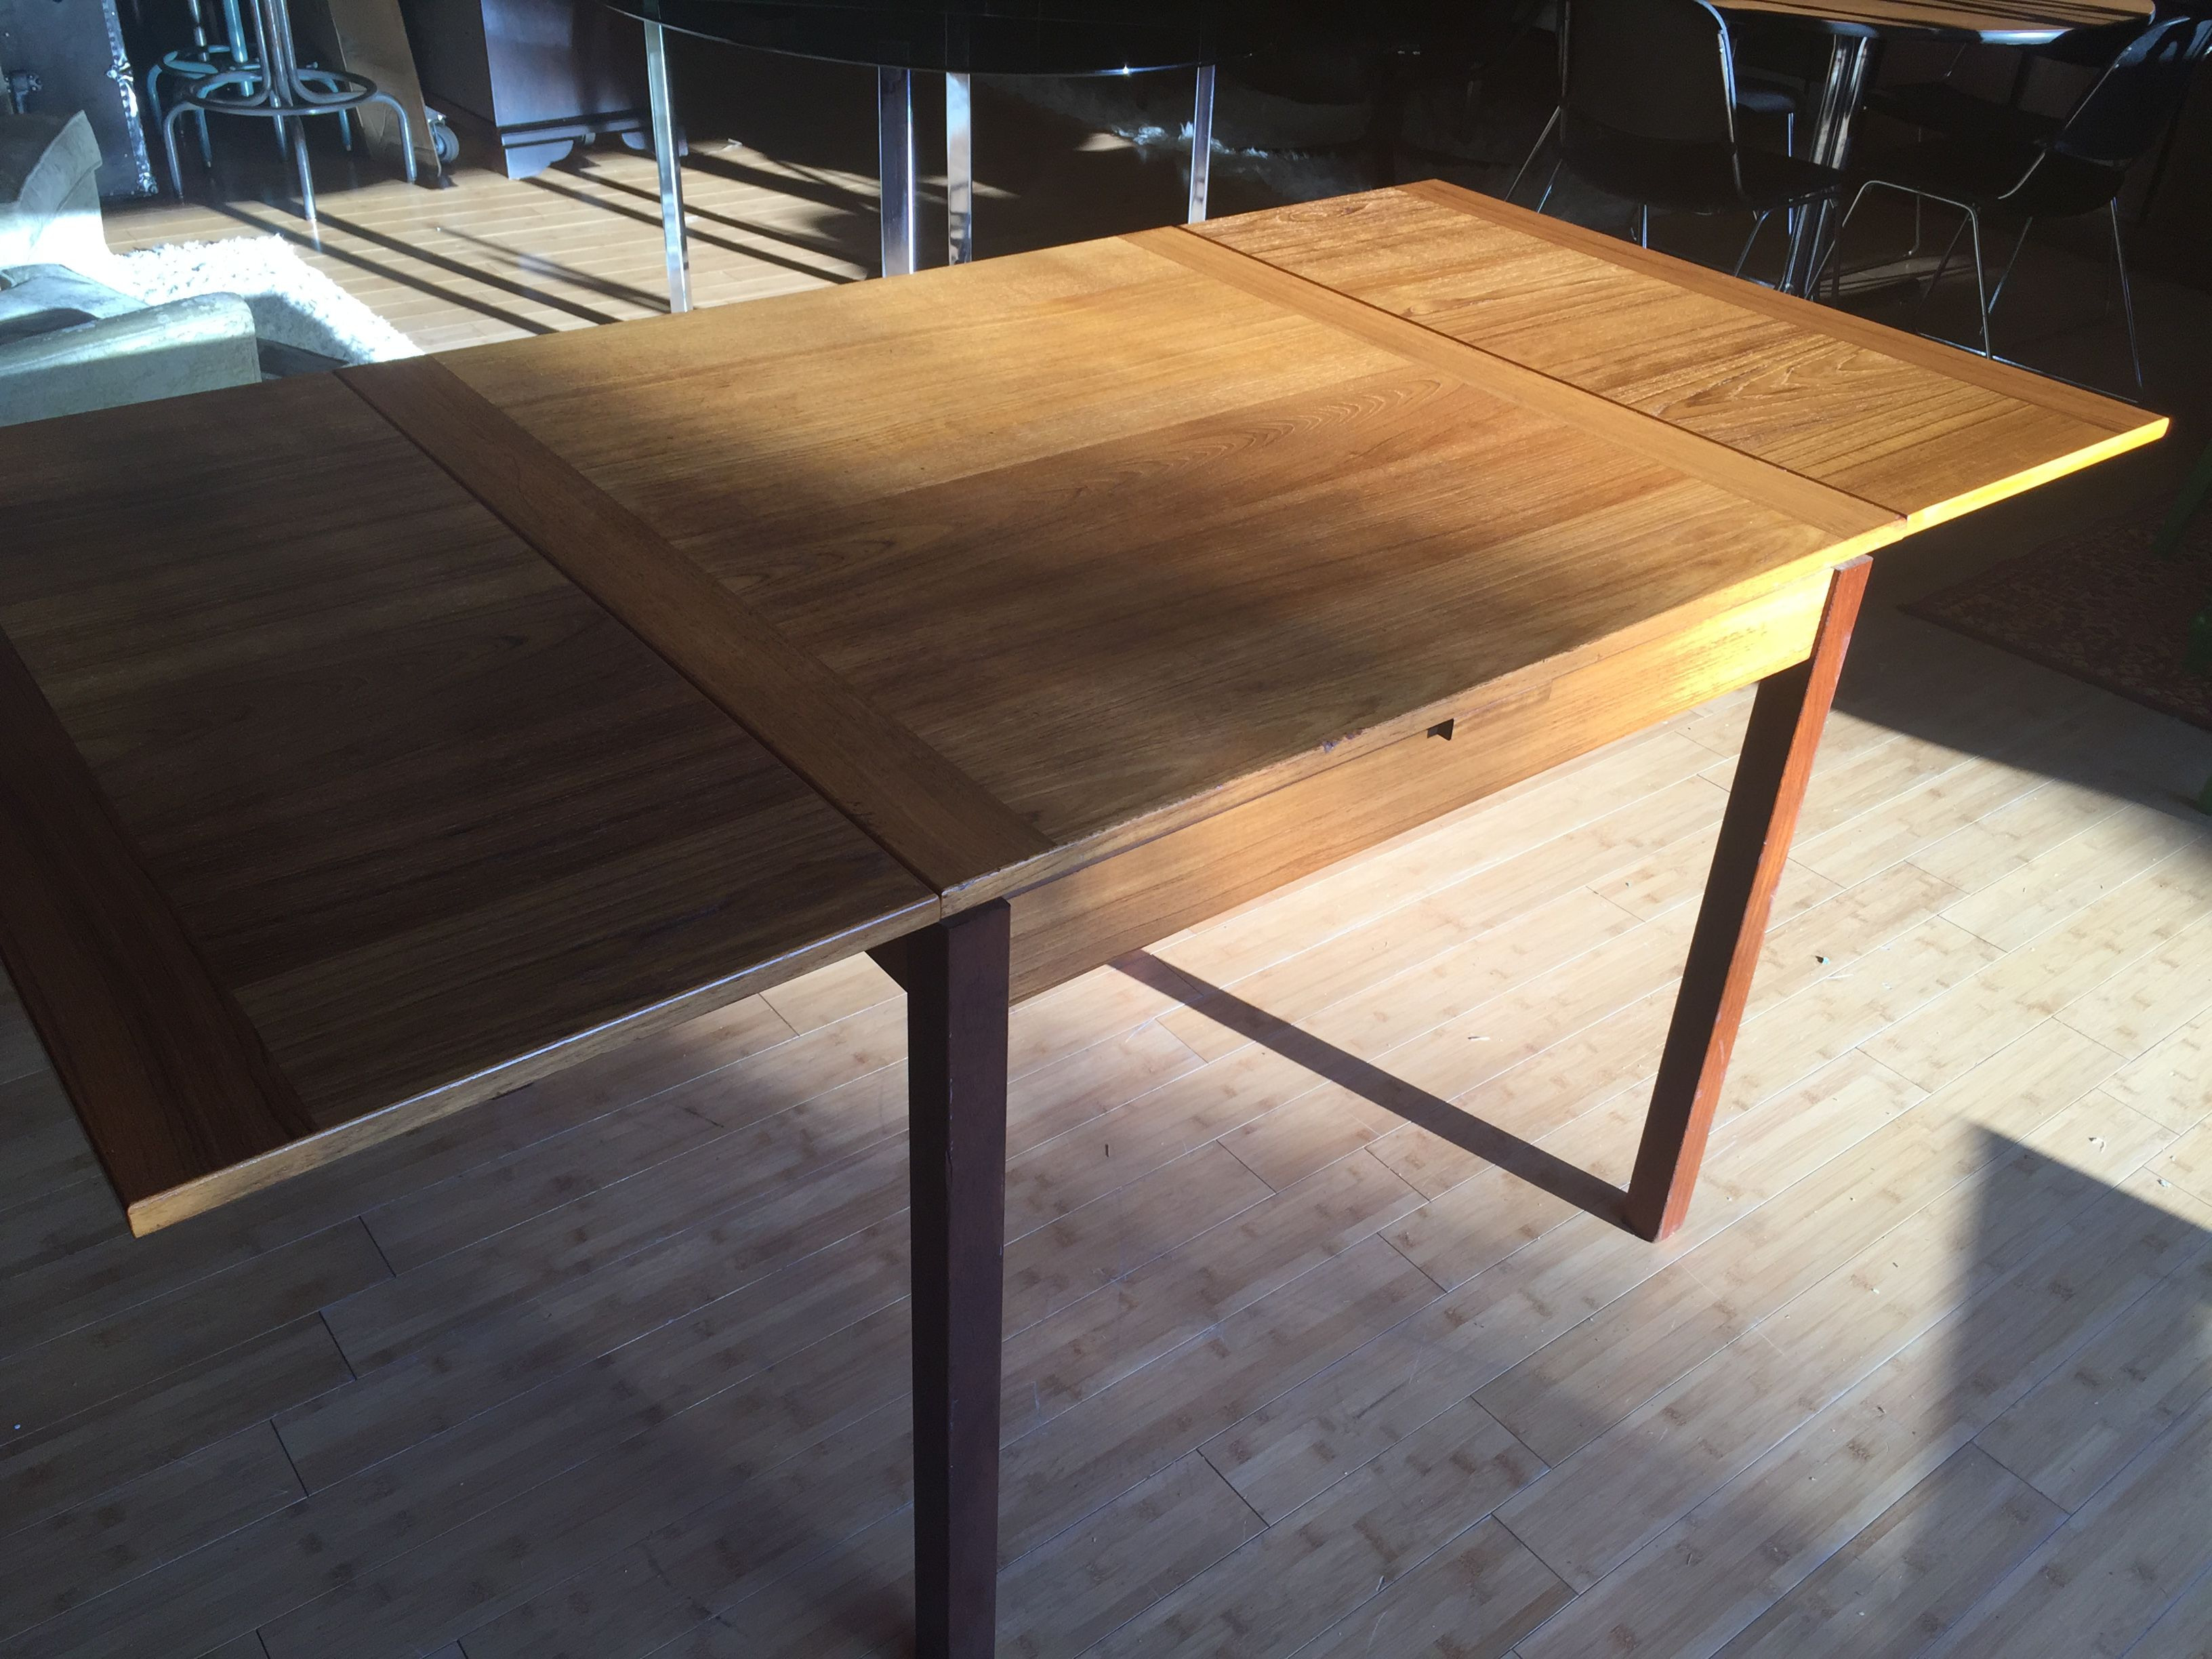 Ansager Mobler Teak Dining Table Made In Denmark For Sale